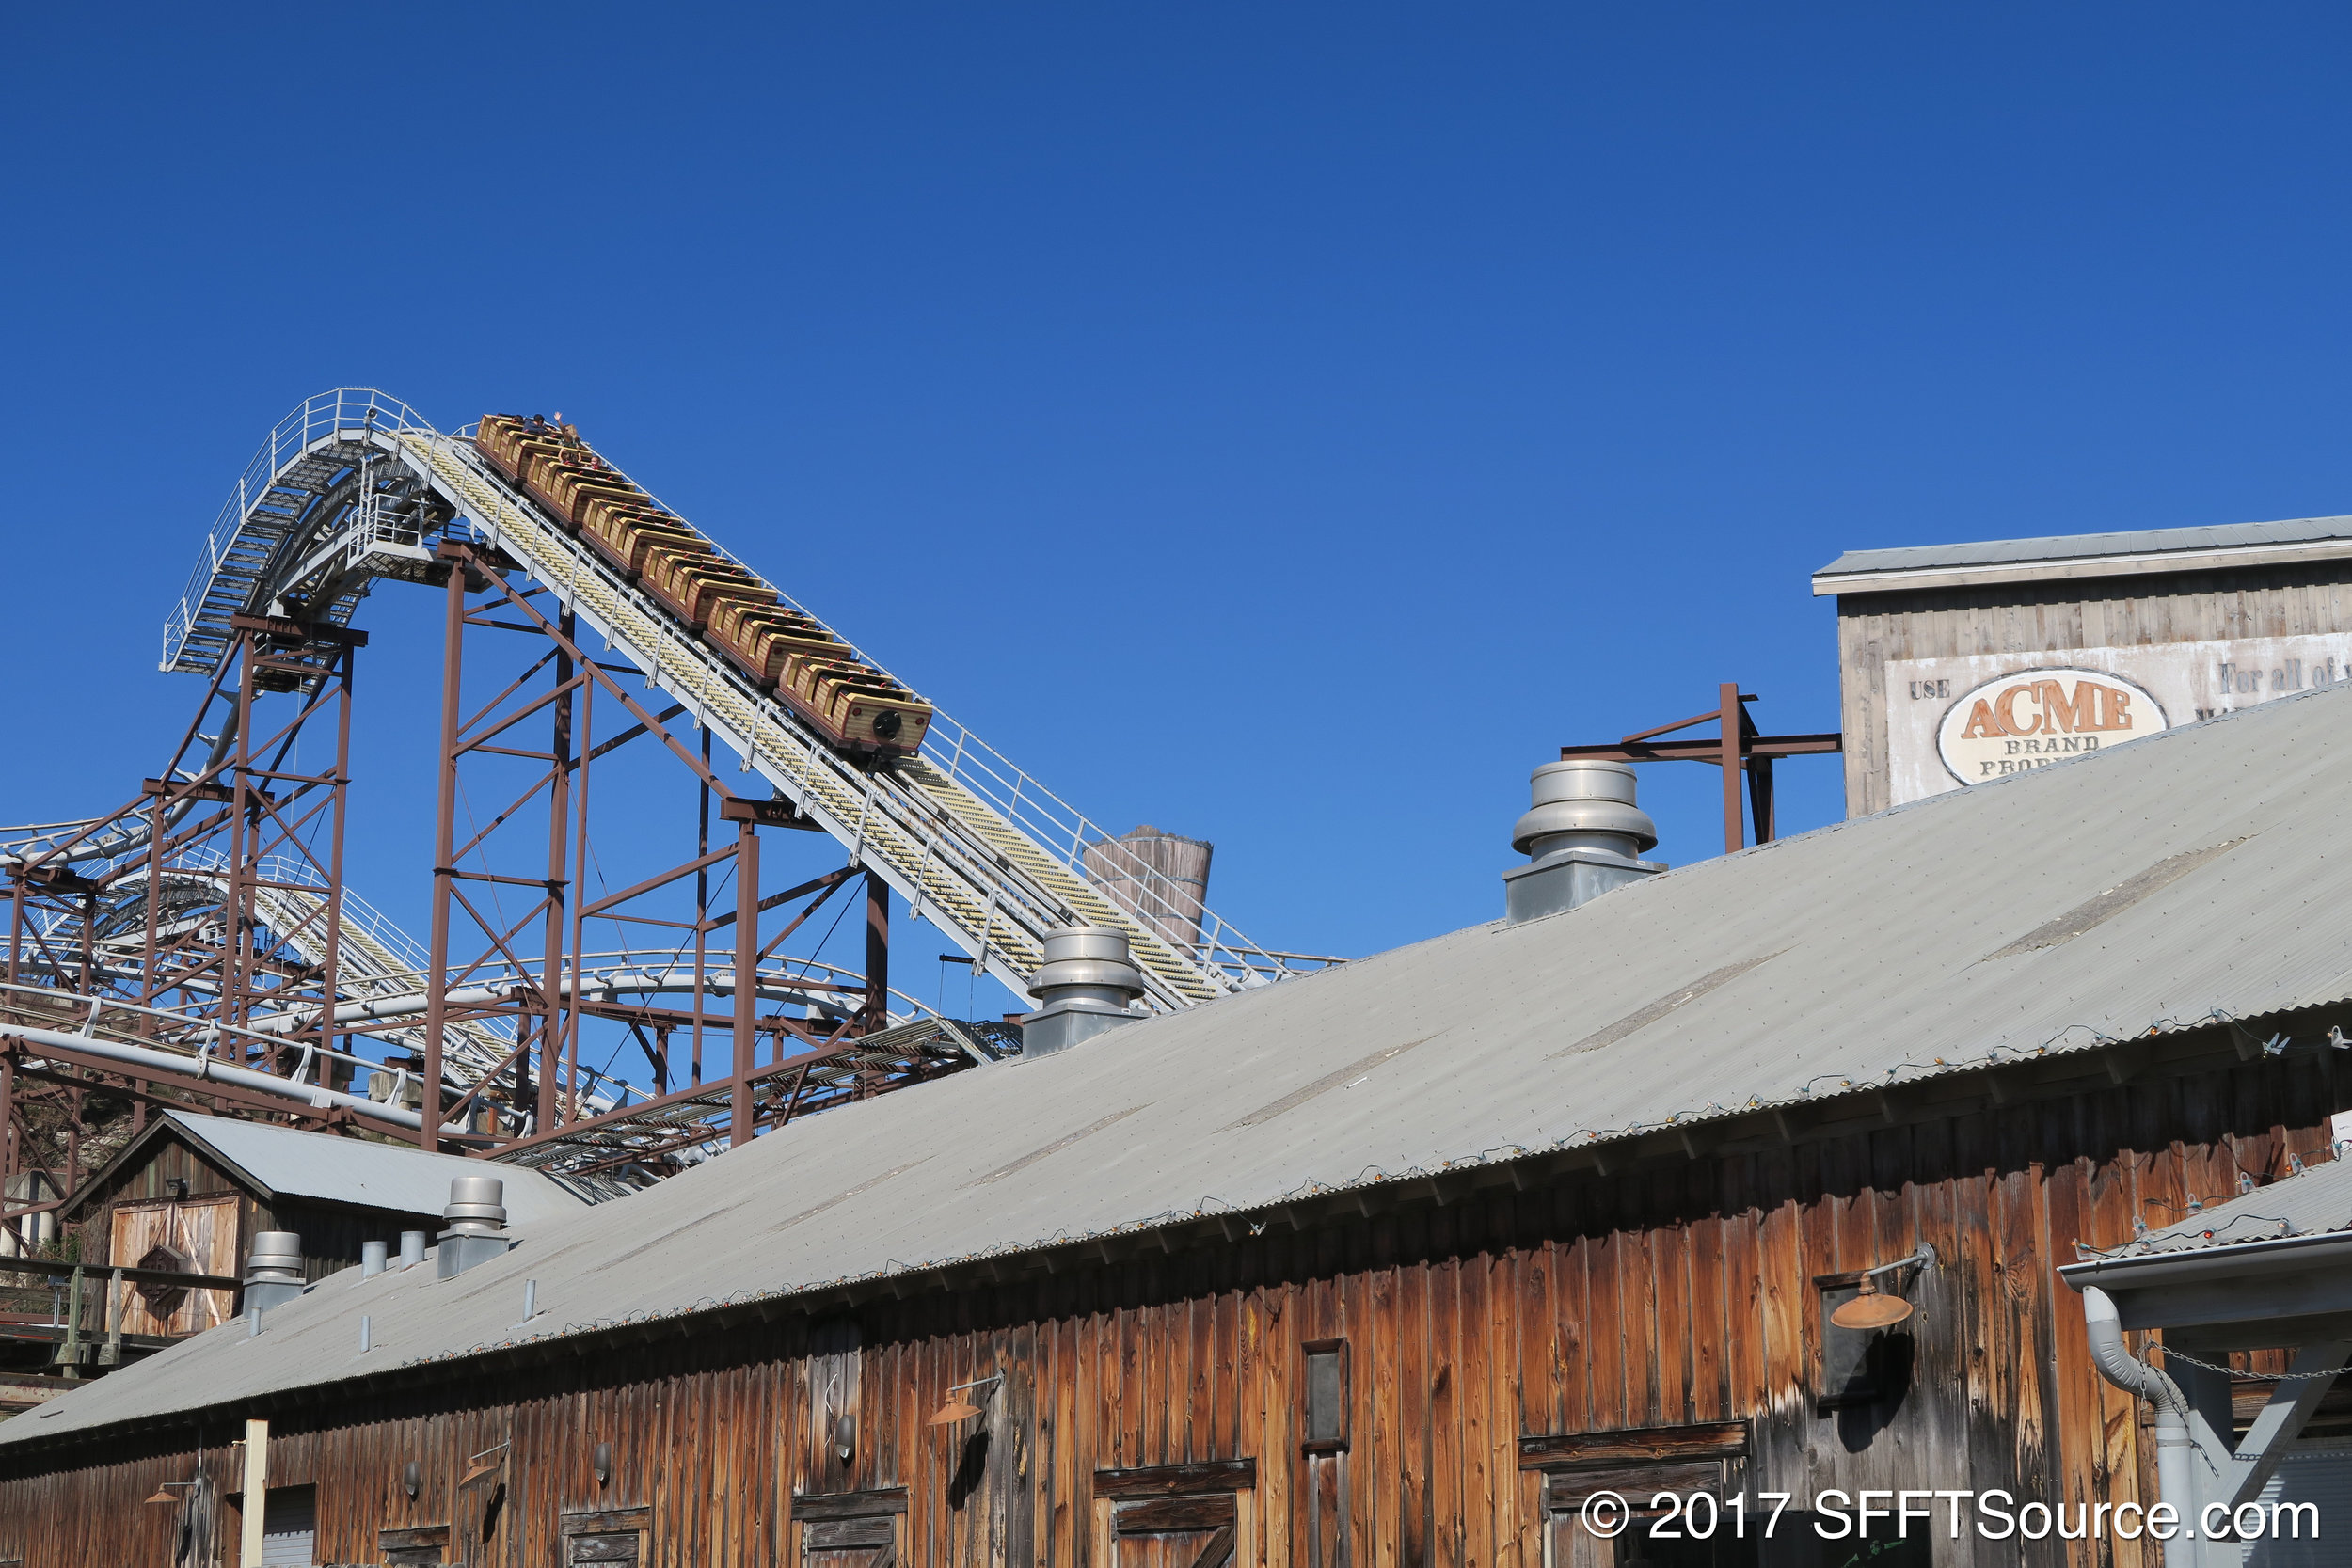 A train approaching the top of the lift hill.